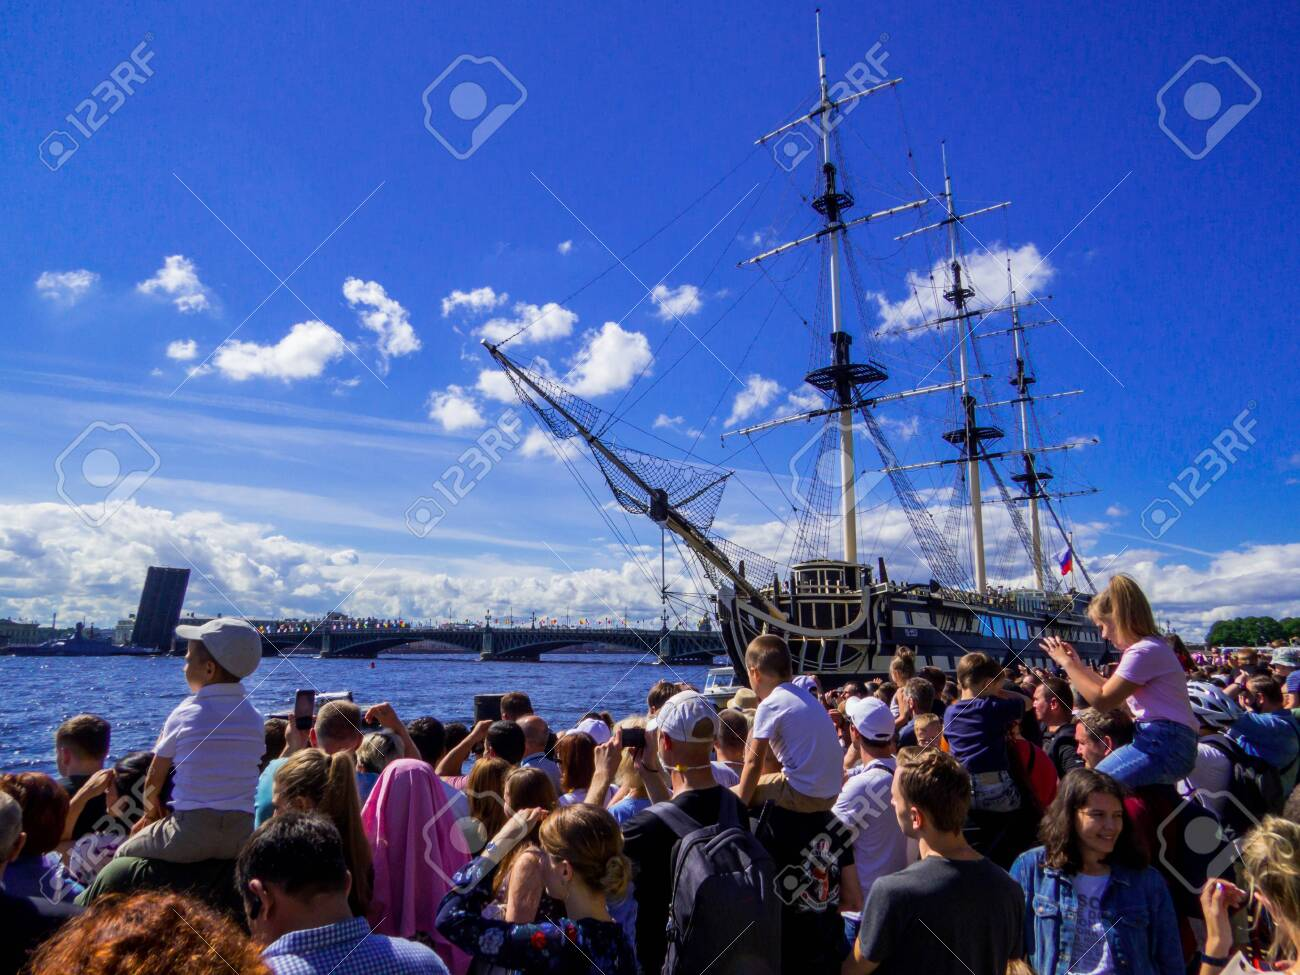 St. Petersburg, Russia - July 26, 2020: People watching the annual celebrations for the Navy Day on the embankment of the Neva River. - 152365081